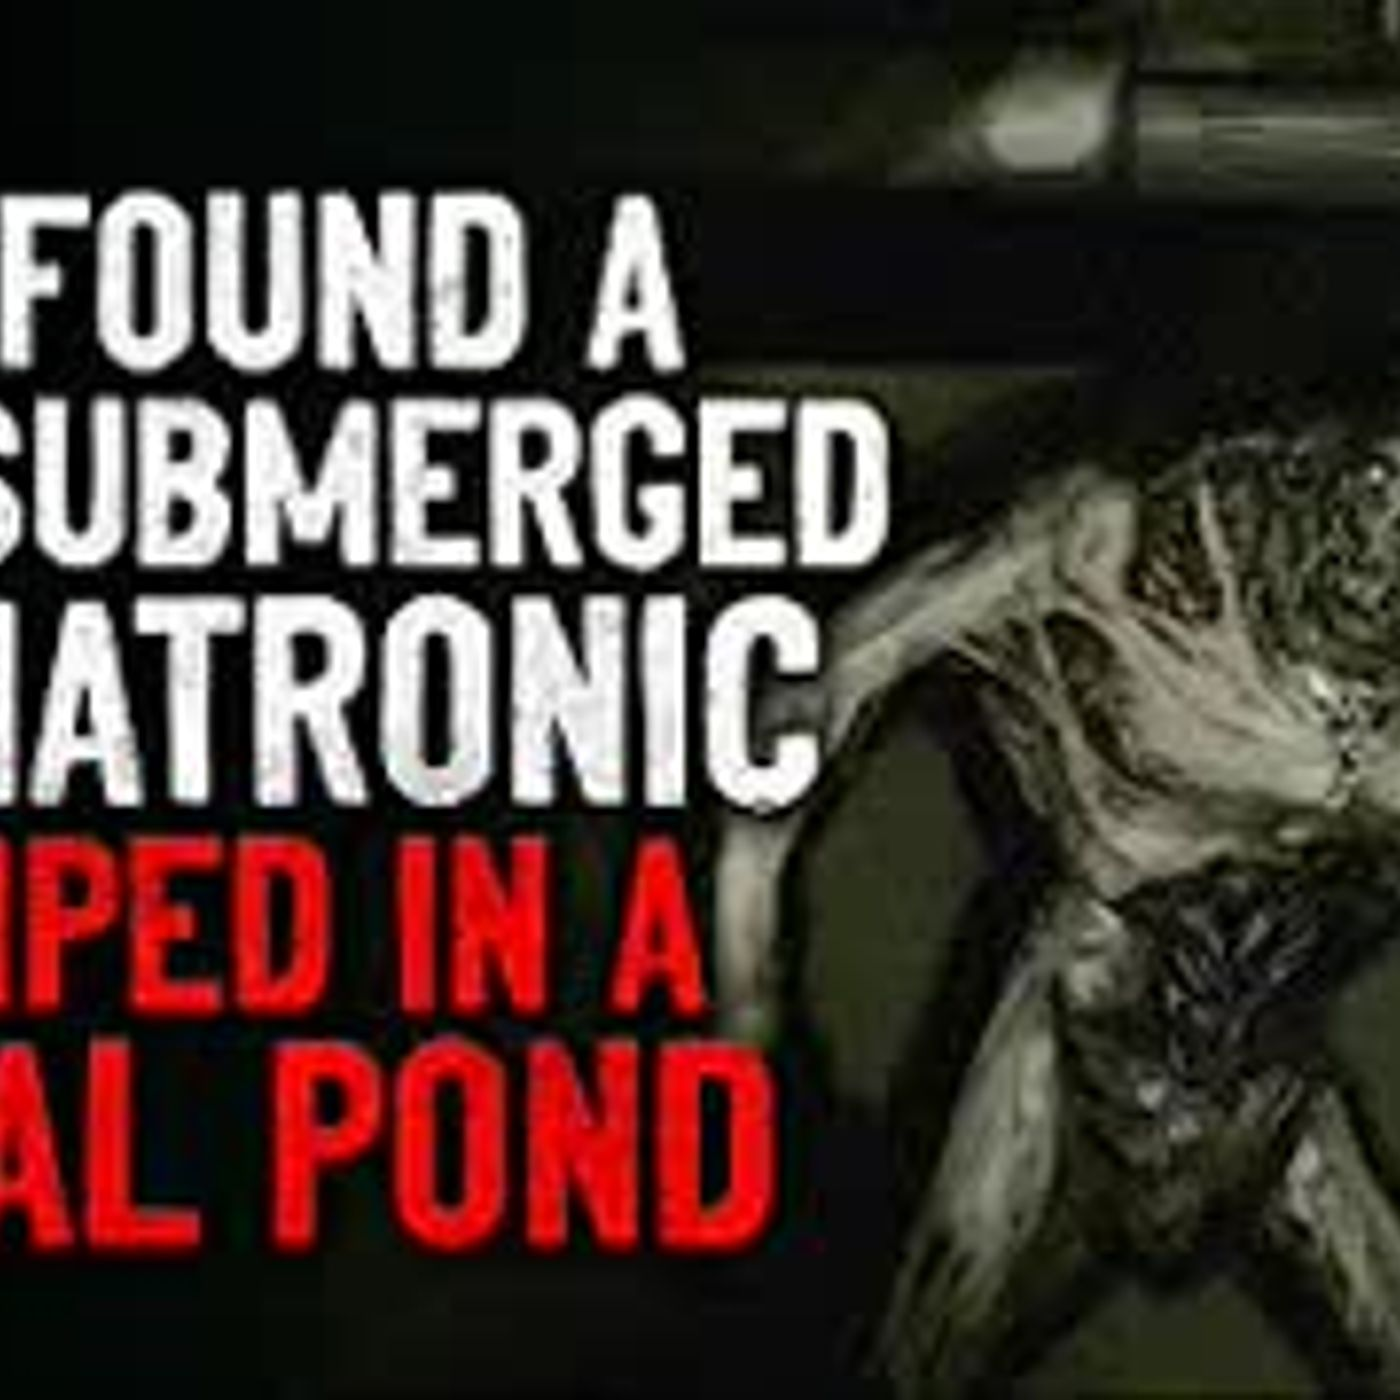 """We found a half submerged animatronic dumped in a local pond"" Creepypasta"